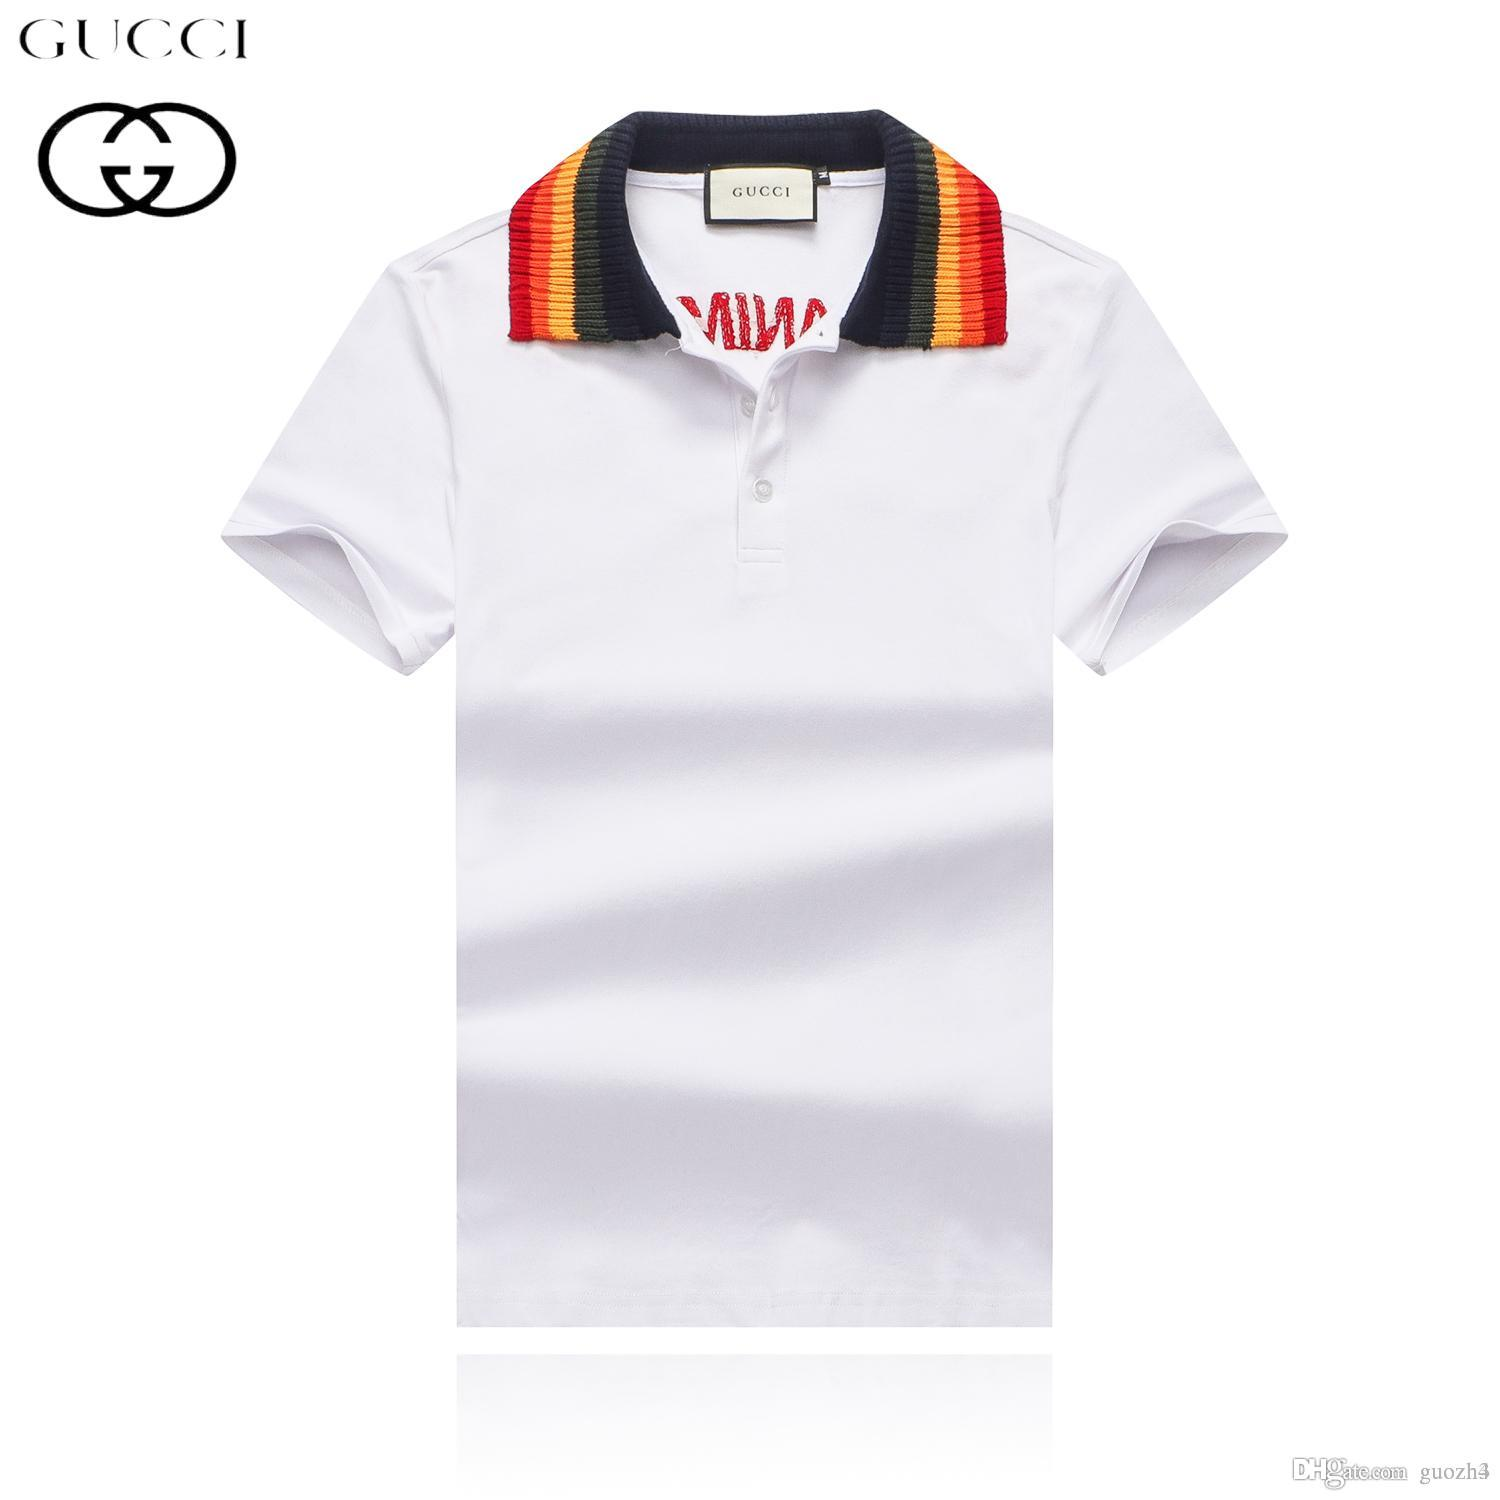 a10d10bef92 2019 18ss New Brand Luxury Embroidery T Shirts For Men Italy Fashion Polos  High Street Snake Little Bee Tiger Print Mens Desginer Polo Shirt From  Guozh4